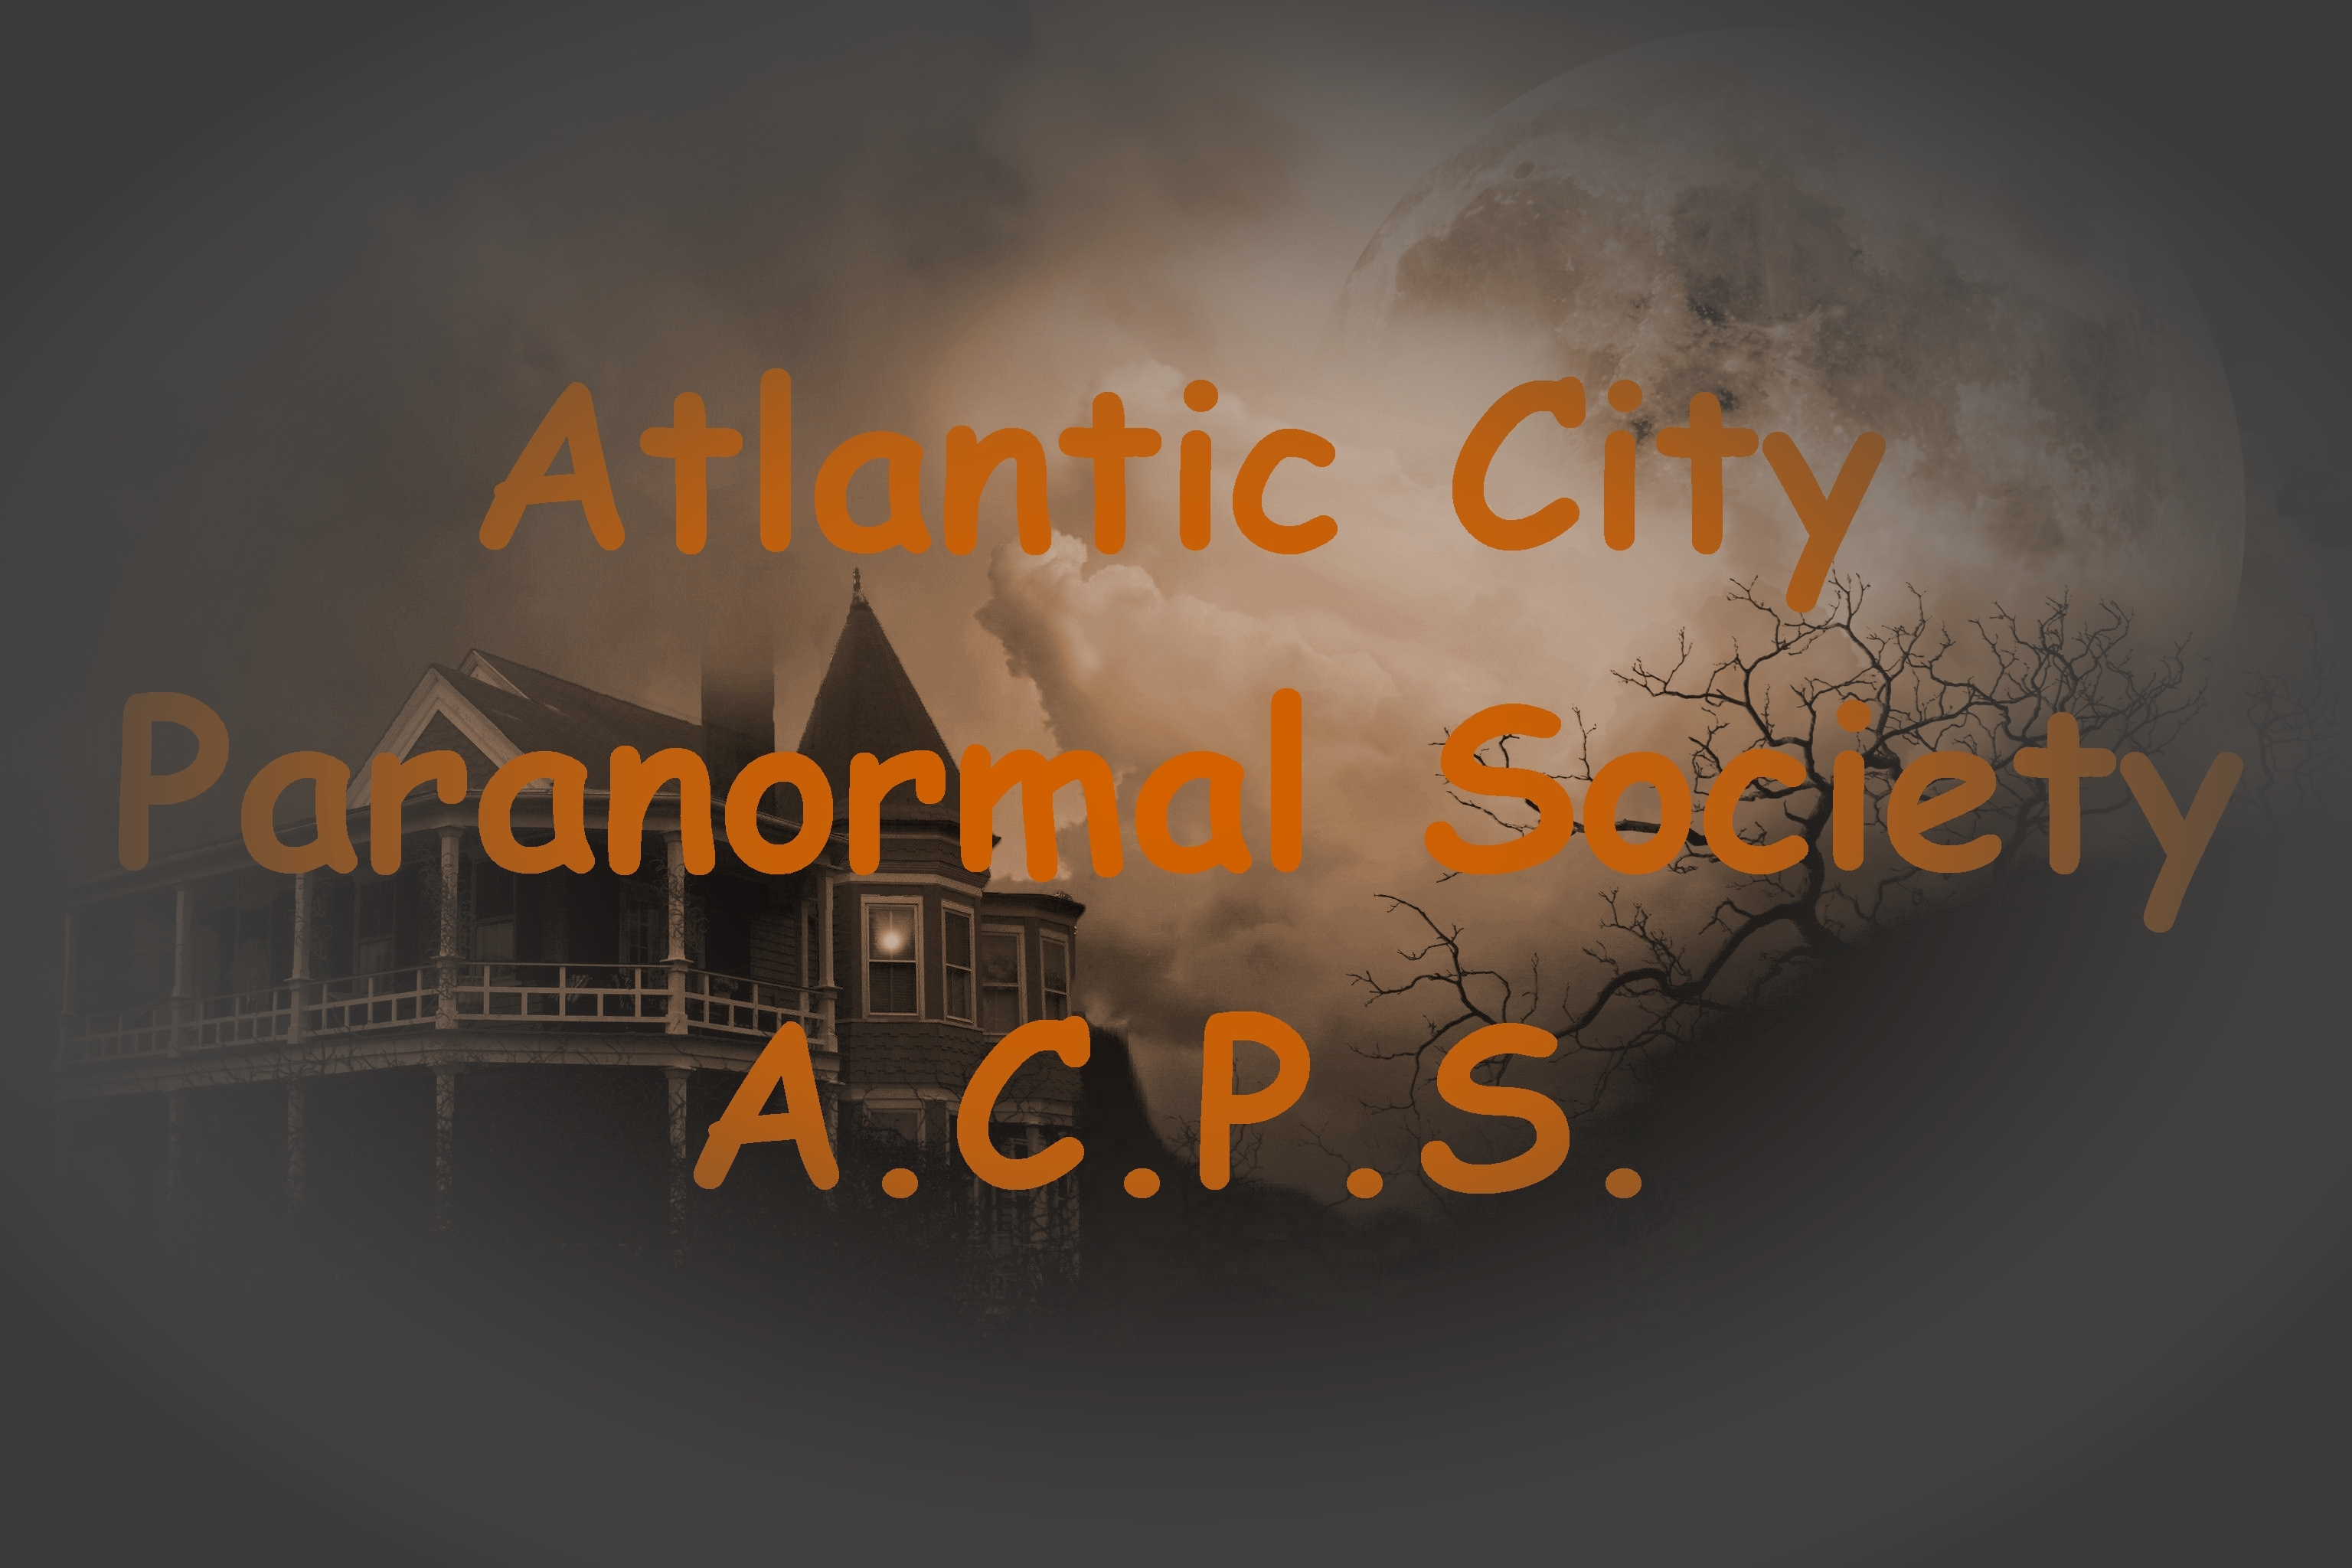 Ghost Hunting Events Scheduled by Atlantic City Paranormal Society, New Jersey Ghost Hunting Events, Atlantic City Ghost Hunting Events, Ghost Hunting Investigations, Ghost Hunting Events in New Jersey, Haunted New Jersey